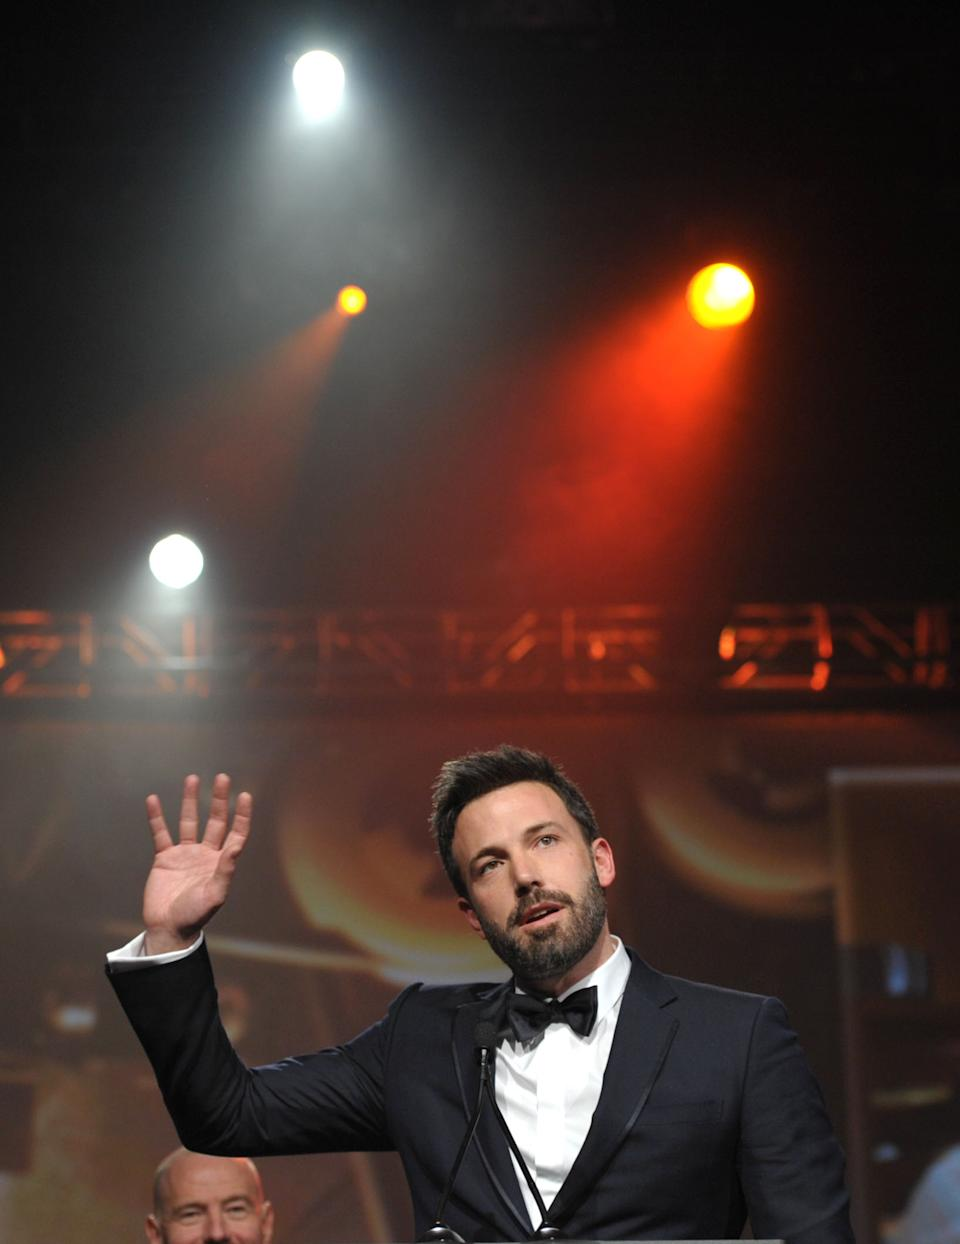 Ben Affleck appears on stage at the 24th Annual Palm Springs International Film Festival Awards Gala on Saturday, Jan. 5, 2013 in Palm Springs, Calif. The gala honors individuals in the film industry with awards for acting, directing, achievement in film scoring and lifetime achievement. (Photo by John Shearer/Invision/AP Images)